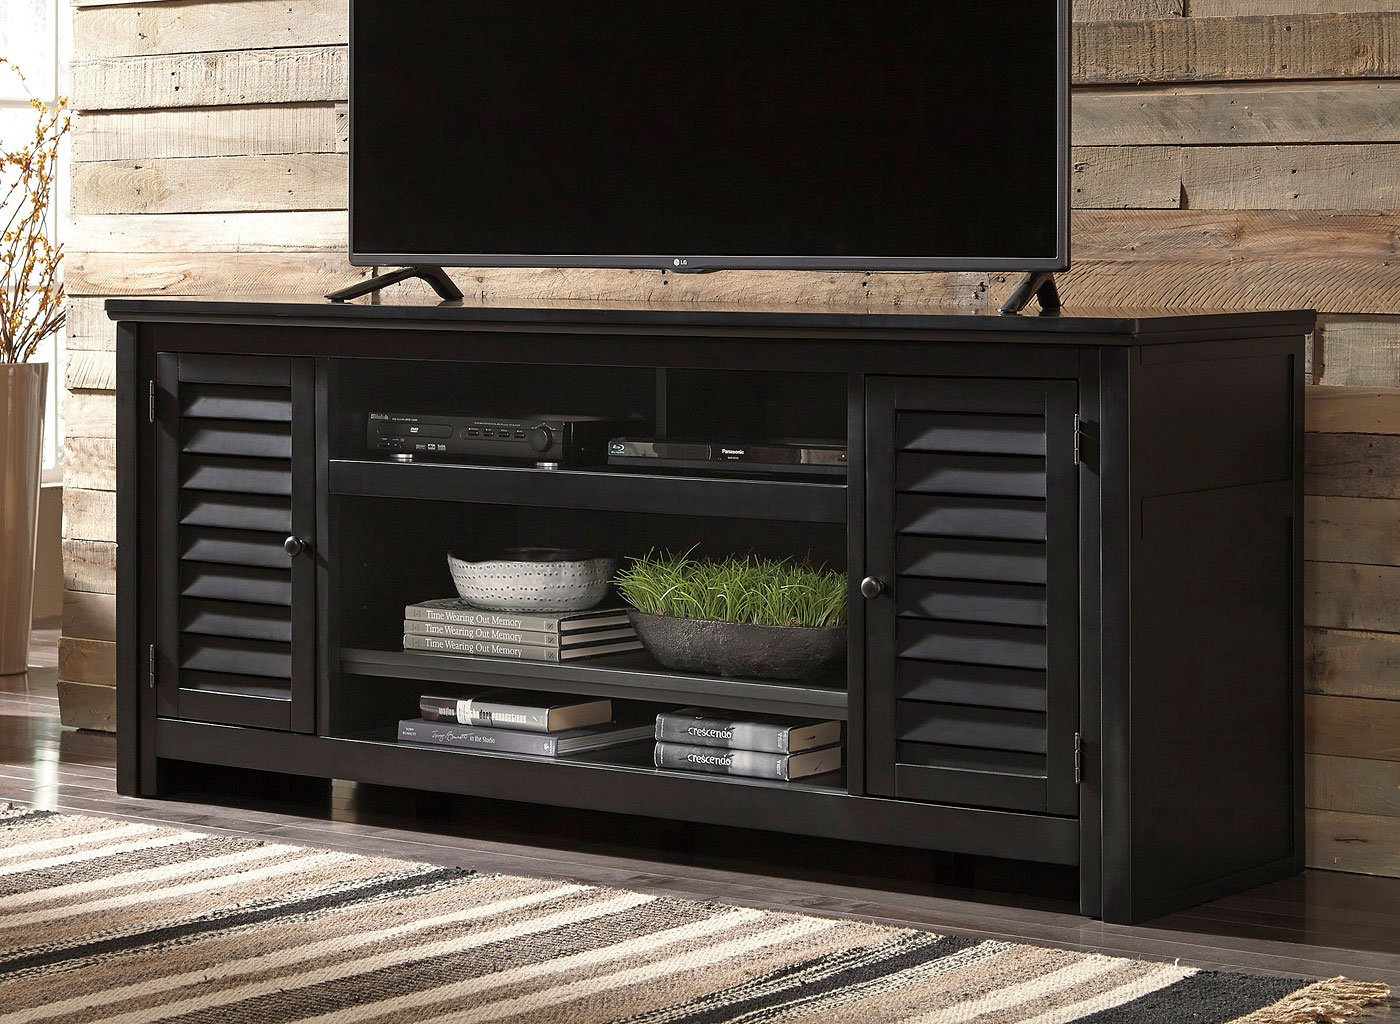 Ashley Furniture Sofas >> Brasenhaus Extra Large TV Stand - TV Stands and TV Consoles - TV Stands and Entertainment ...